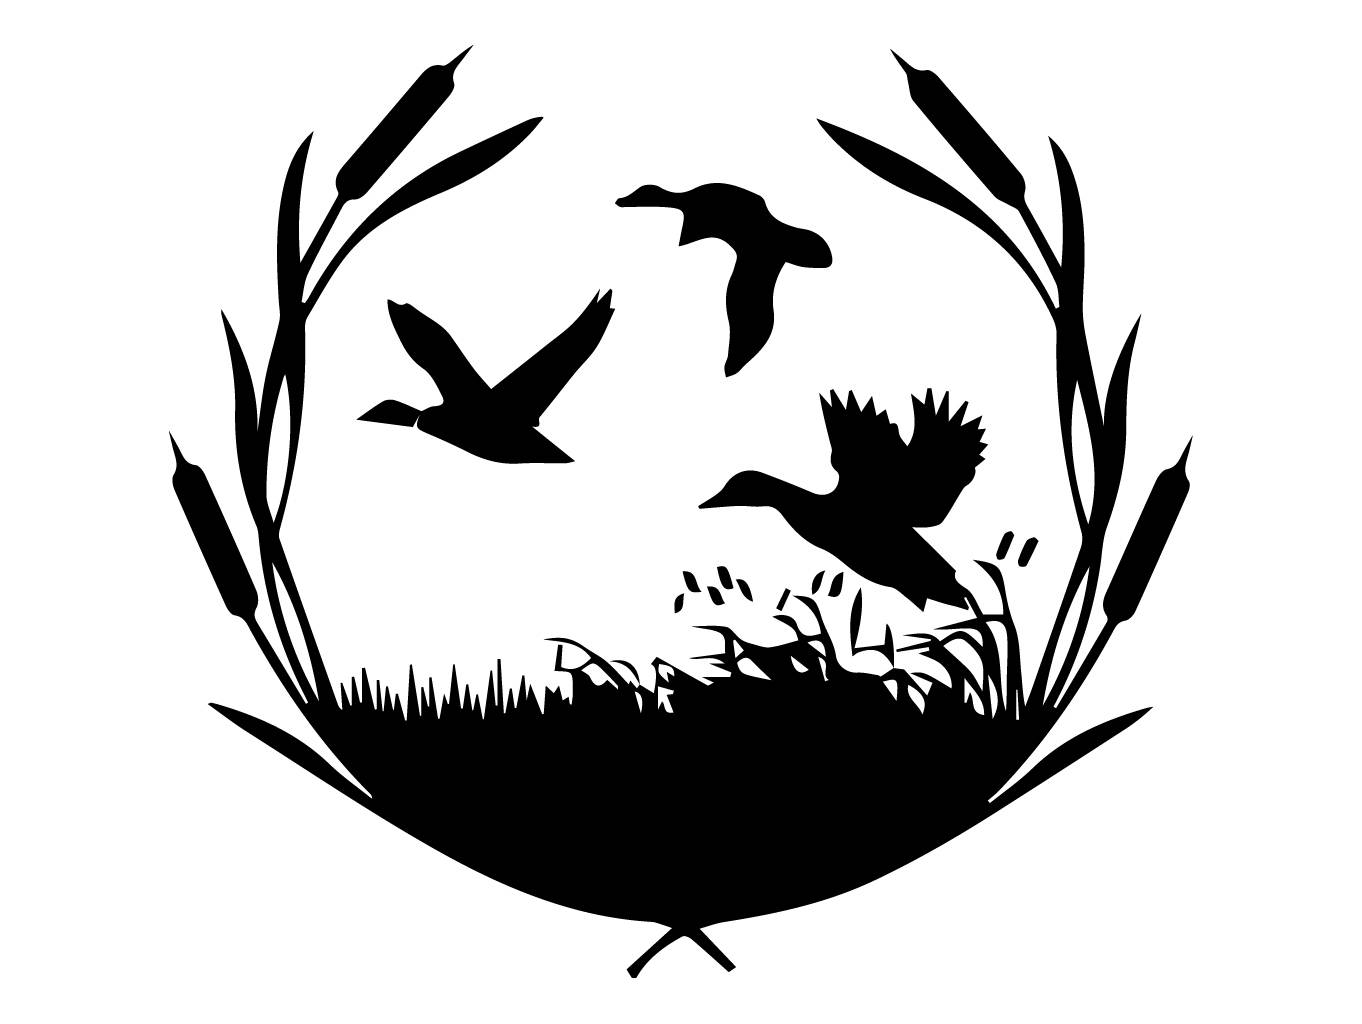 Duck Nature Hunter Hunting Bird Hunt Hobby Weapon Goose Flight .SVG .EPS  .PNG Vector Space Clipart Digital Download Circuit Cut Cutting.